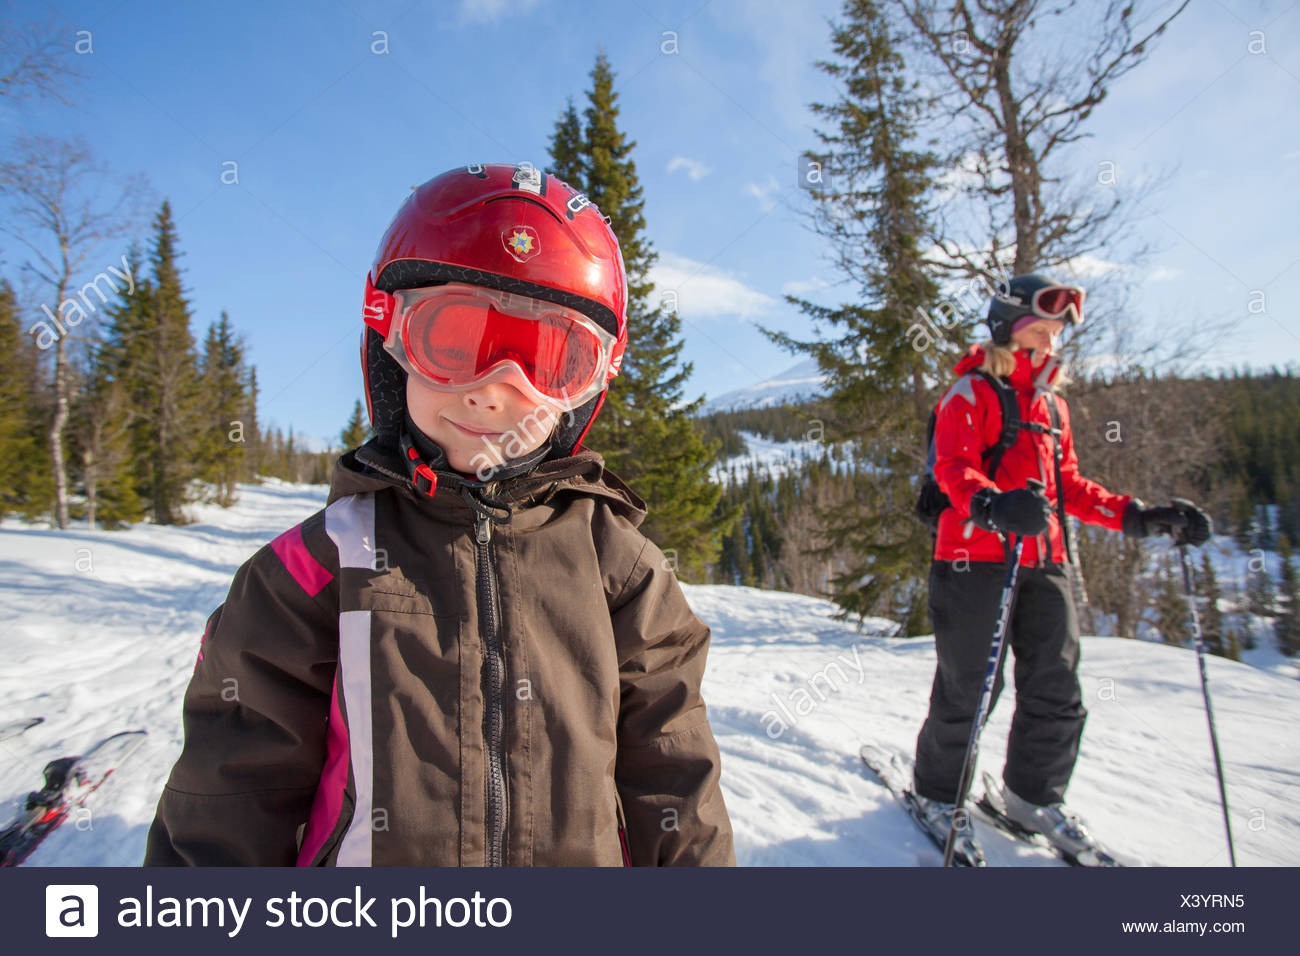 Norway, Osterdalen, Trysil, Portrait of smiling girl (4-5) standing on ski slope - Stock Image